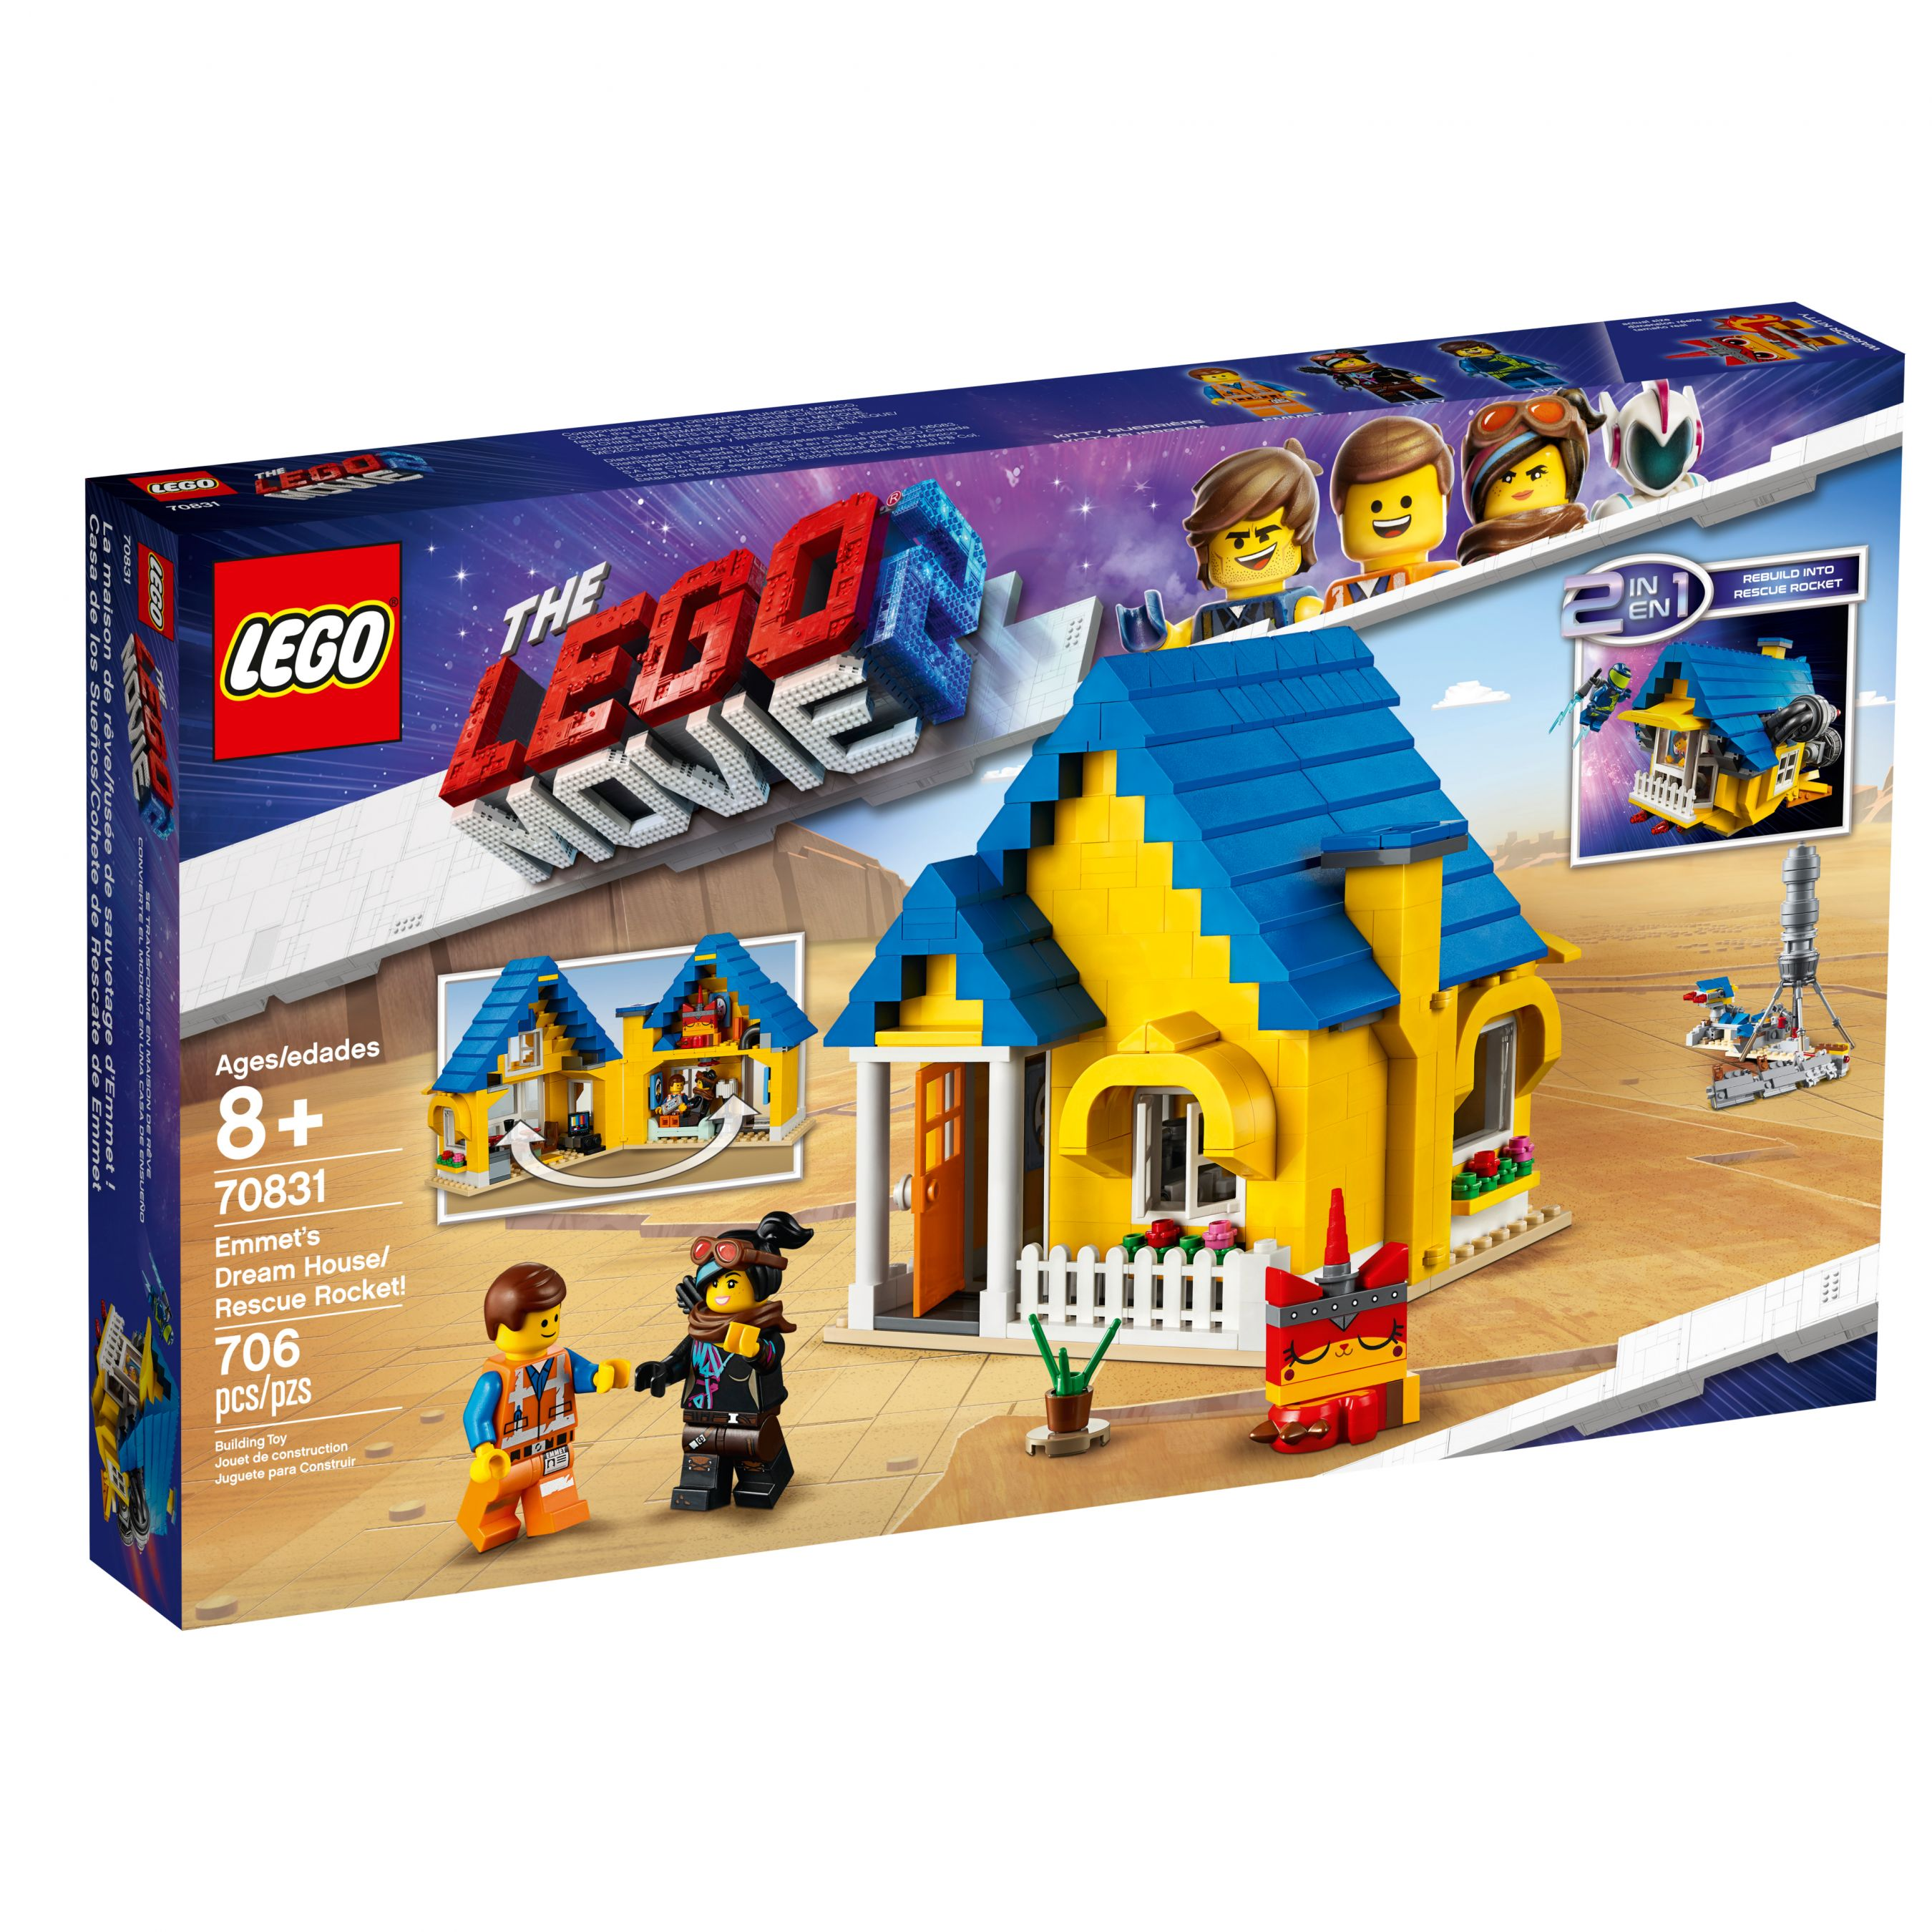 LEGO The LEGO Movie 70831 Emmets Traumhaus/Rettungsrakete! LEGO_70831_alt1.jpg